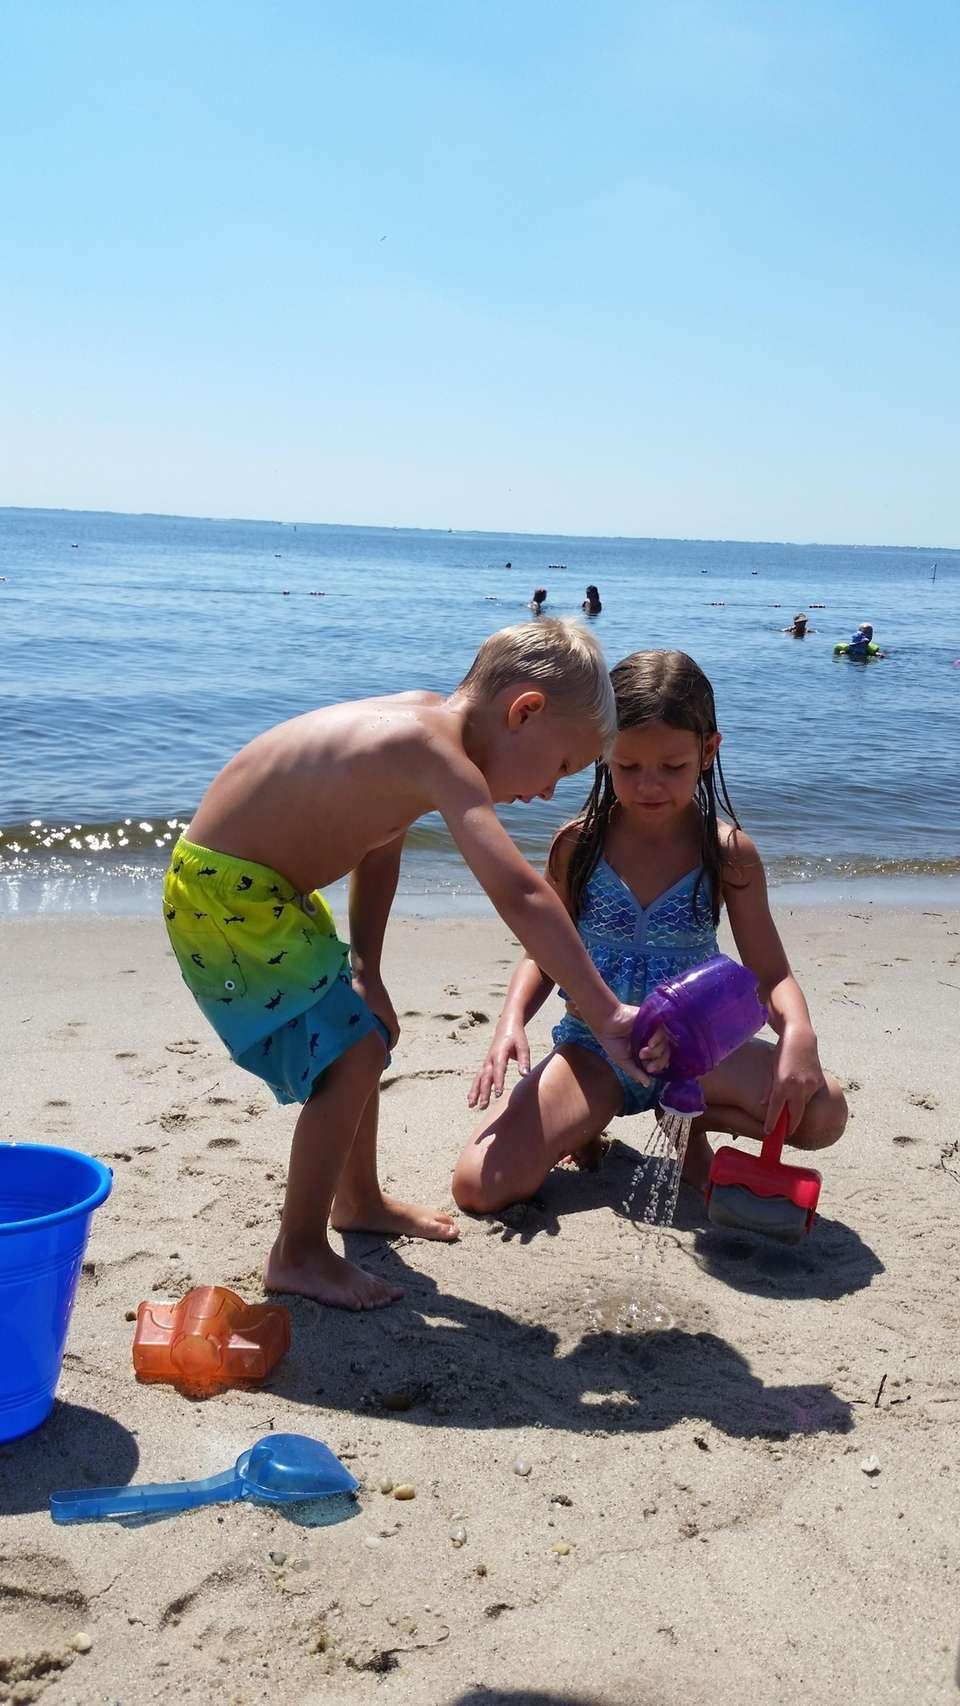 My two grandchildren Jimmy 4yo and his sister